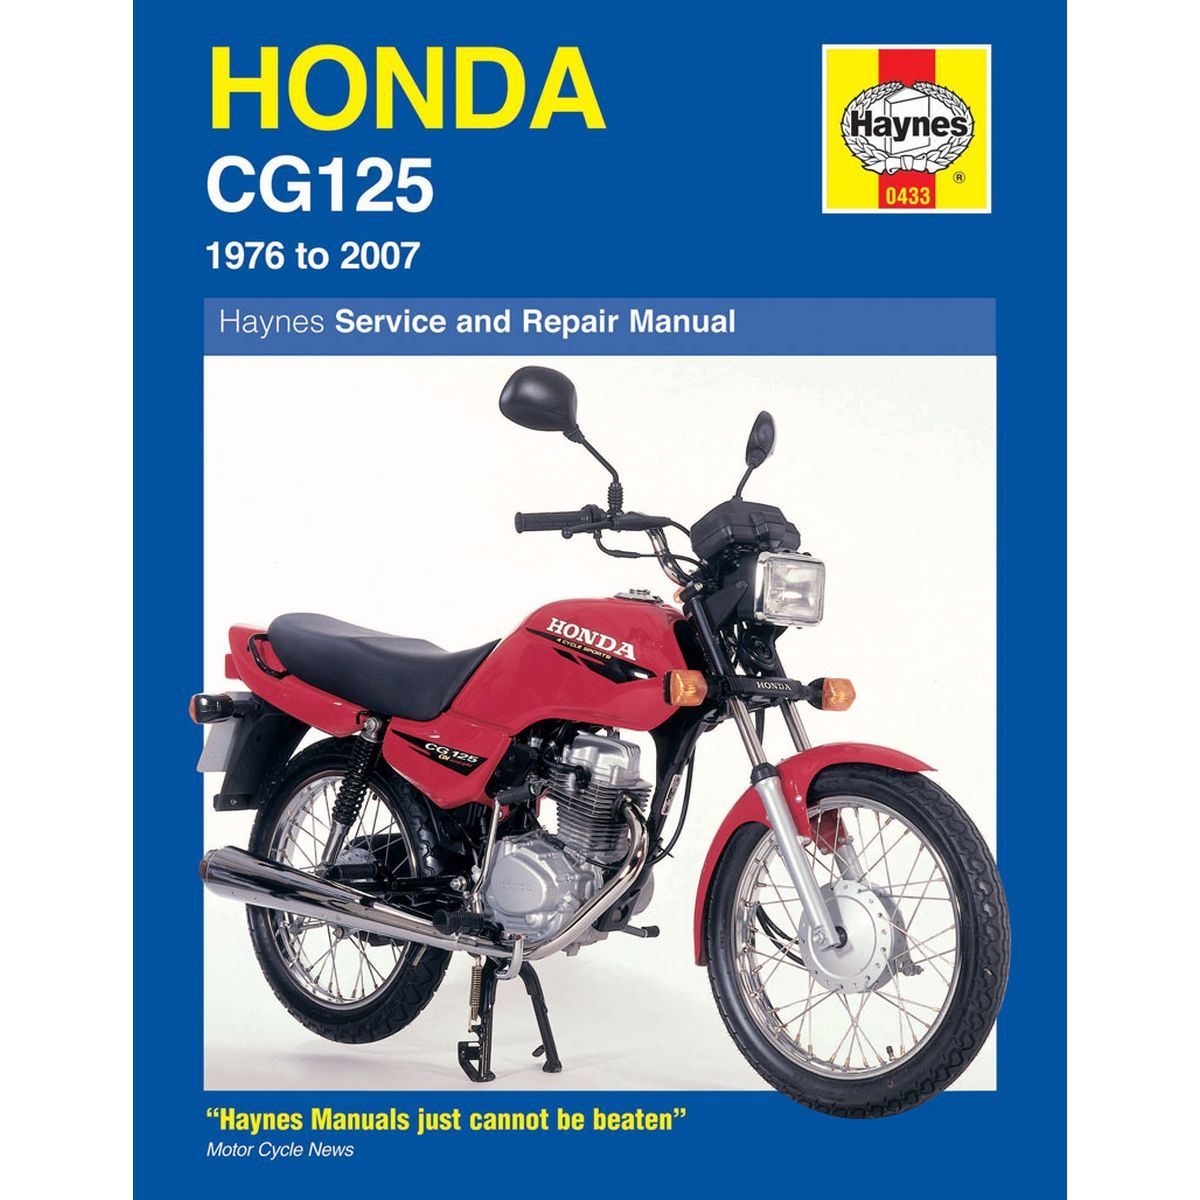 Manual Haynes For 2008 Honda Cg 125 Es8